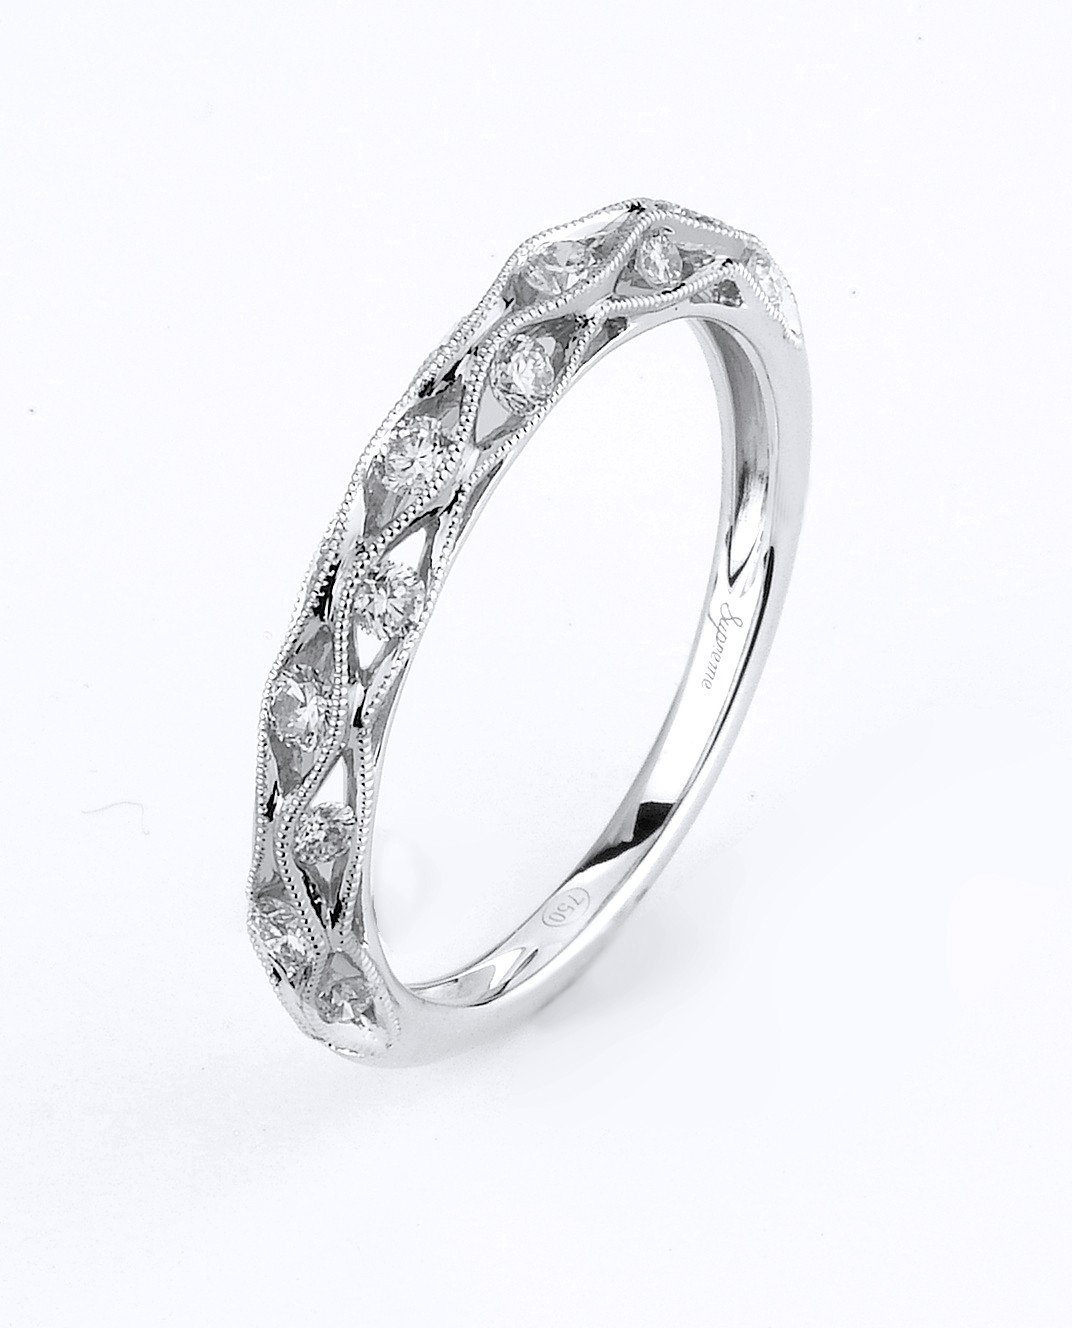 Supreme Jewelry Supreme - SJU1300RB Wedding Band - Birmingham Jewelry